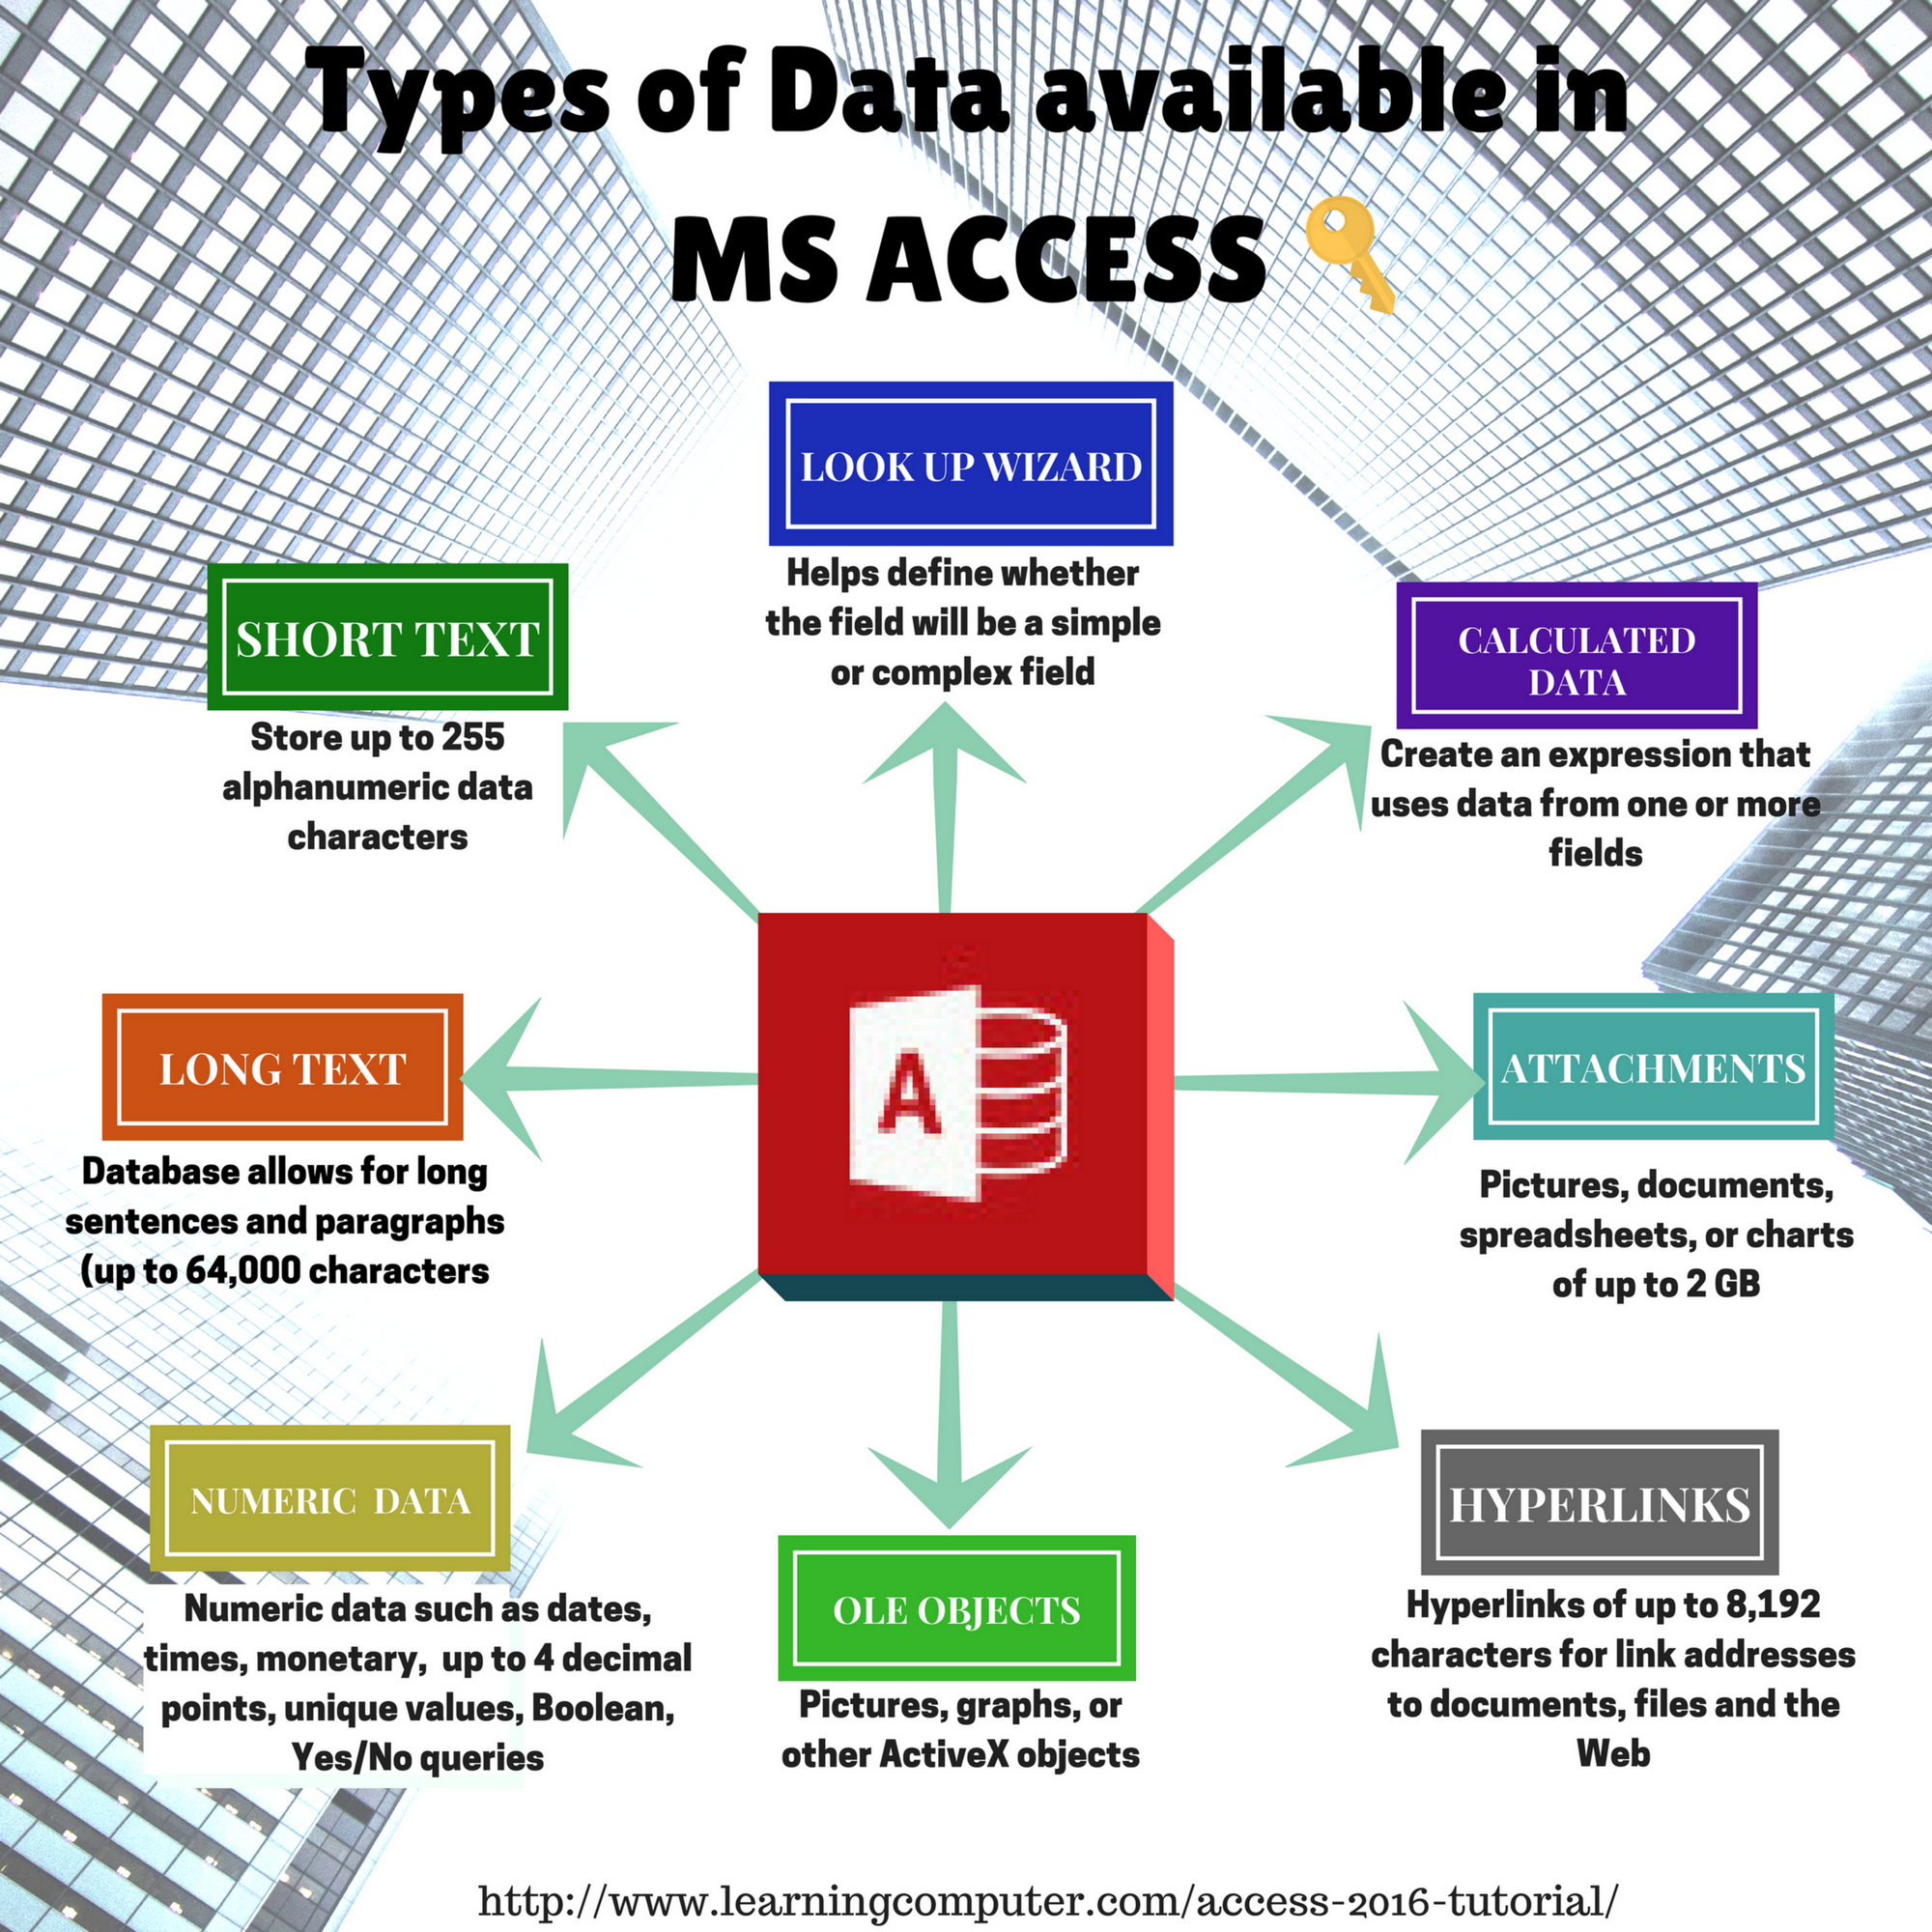 ms access datatype  Data types Ms Access 2016 | IT Computer training - Learningcomputer.com